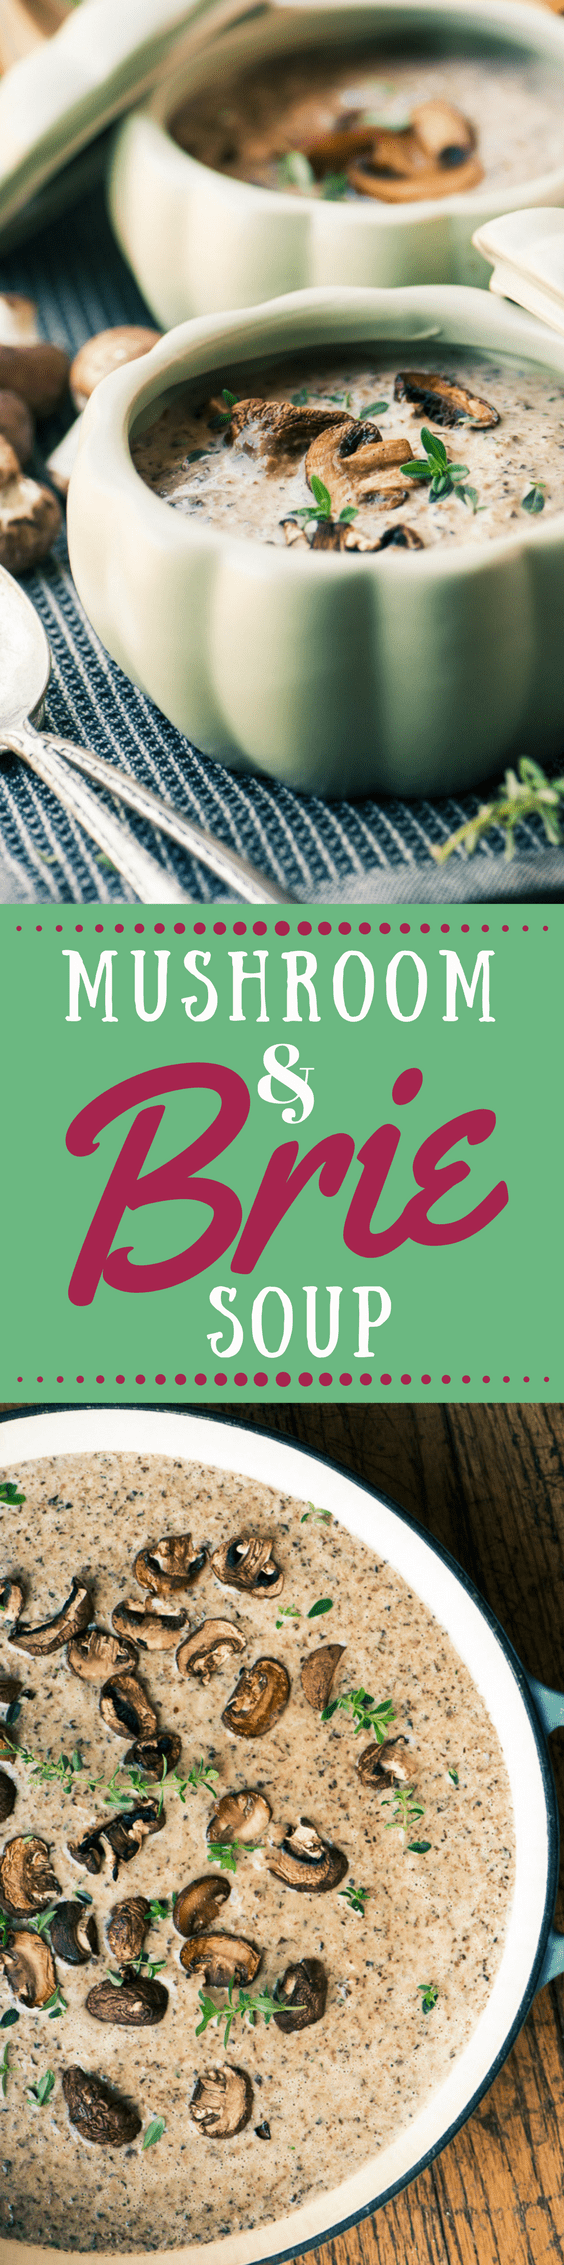 Mushroom and Brie Soup is a fall classic kicked up a notch with lots of creamy Brie cheese. It's perfect for a cozy dinner on the couch or a special first course for holiday meal. #soup #comfortfood #cheesesoup #mushroomsoup #bestmushroomsoup #easymushroomsoup #fall #fallsoup